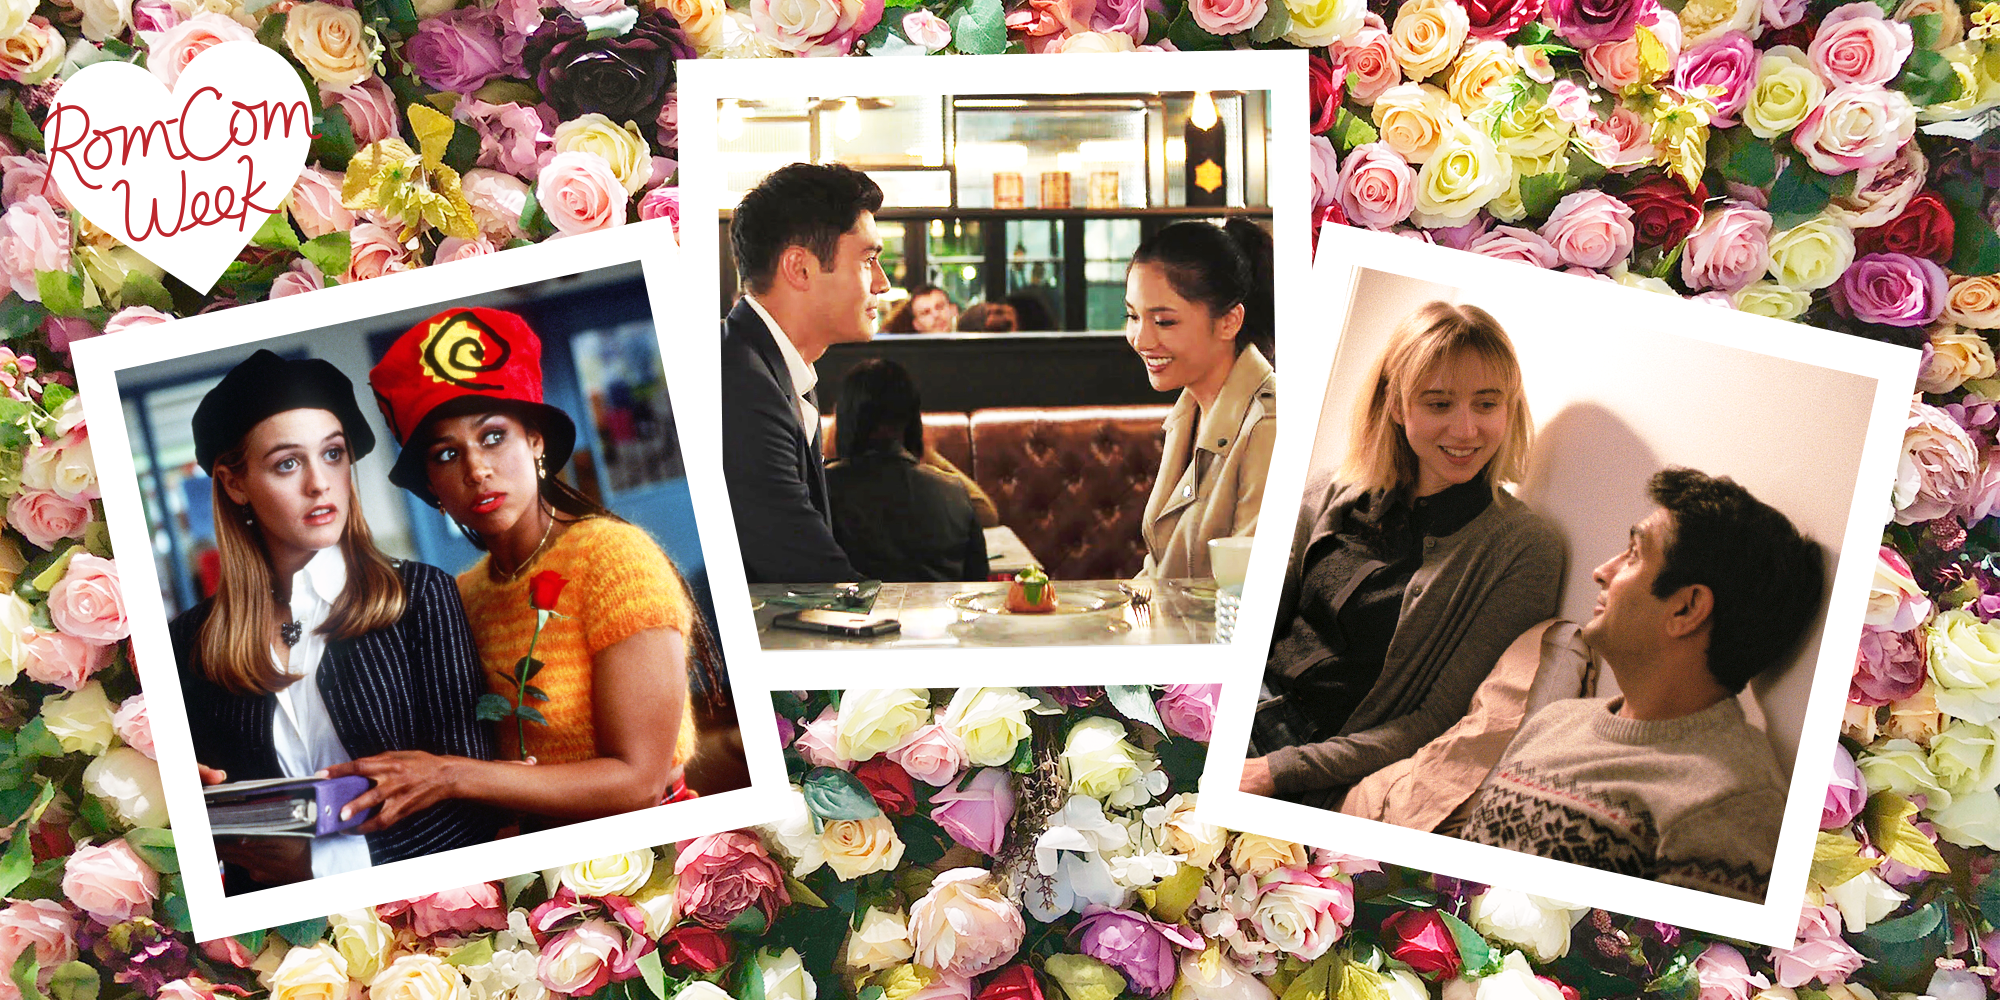 The 55 Best Rom-Coms of All Time, Ranked